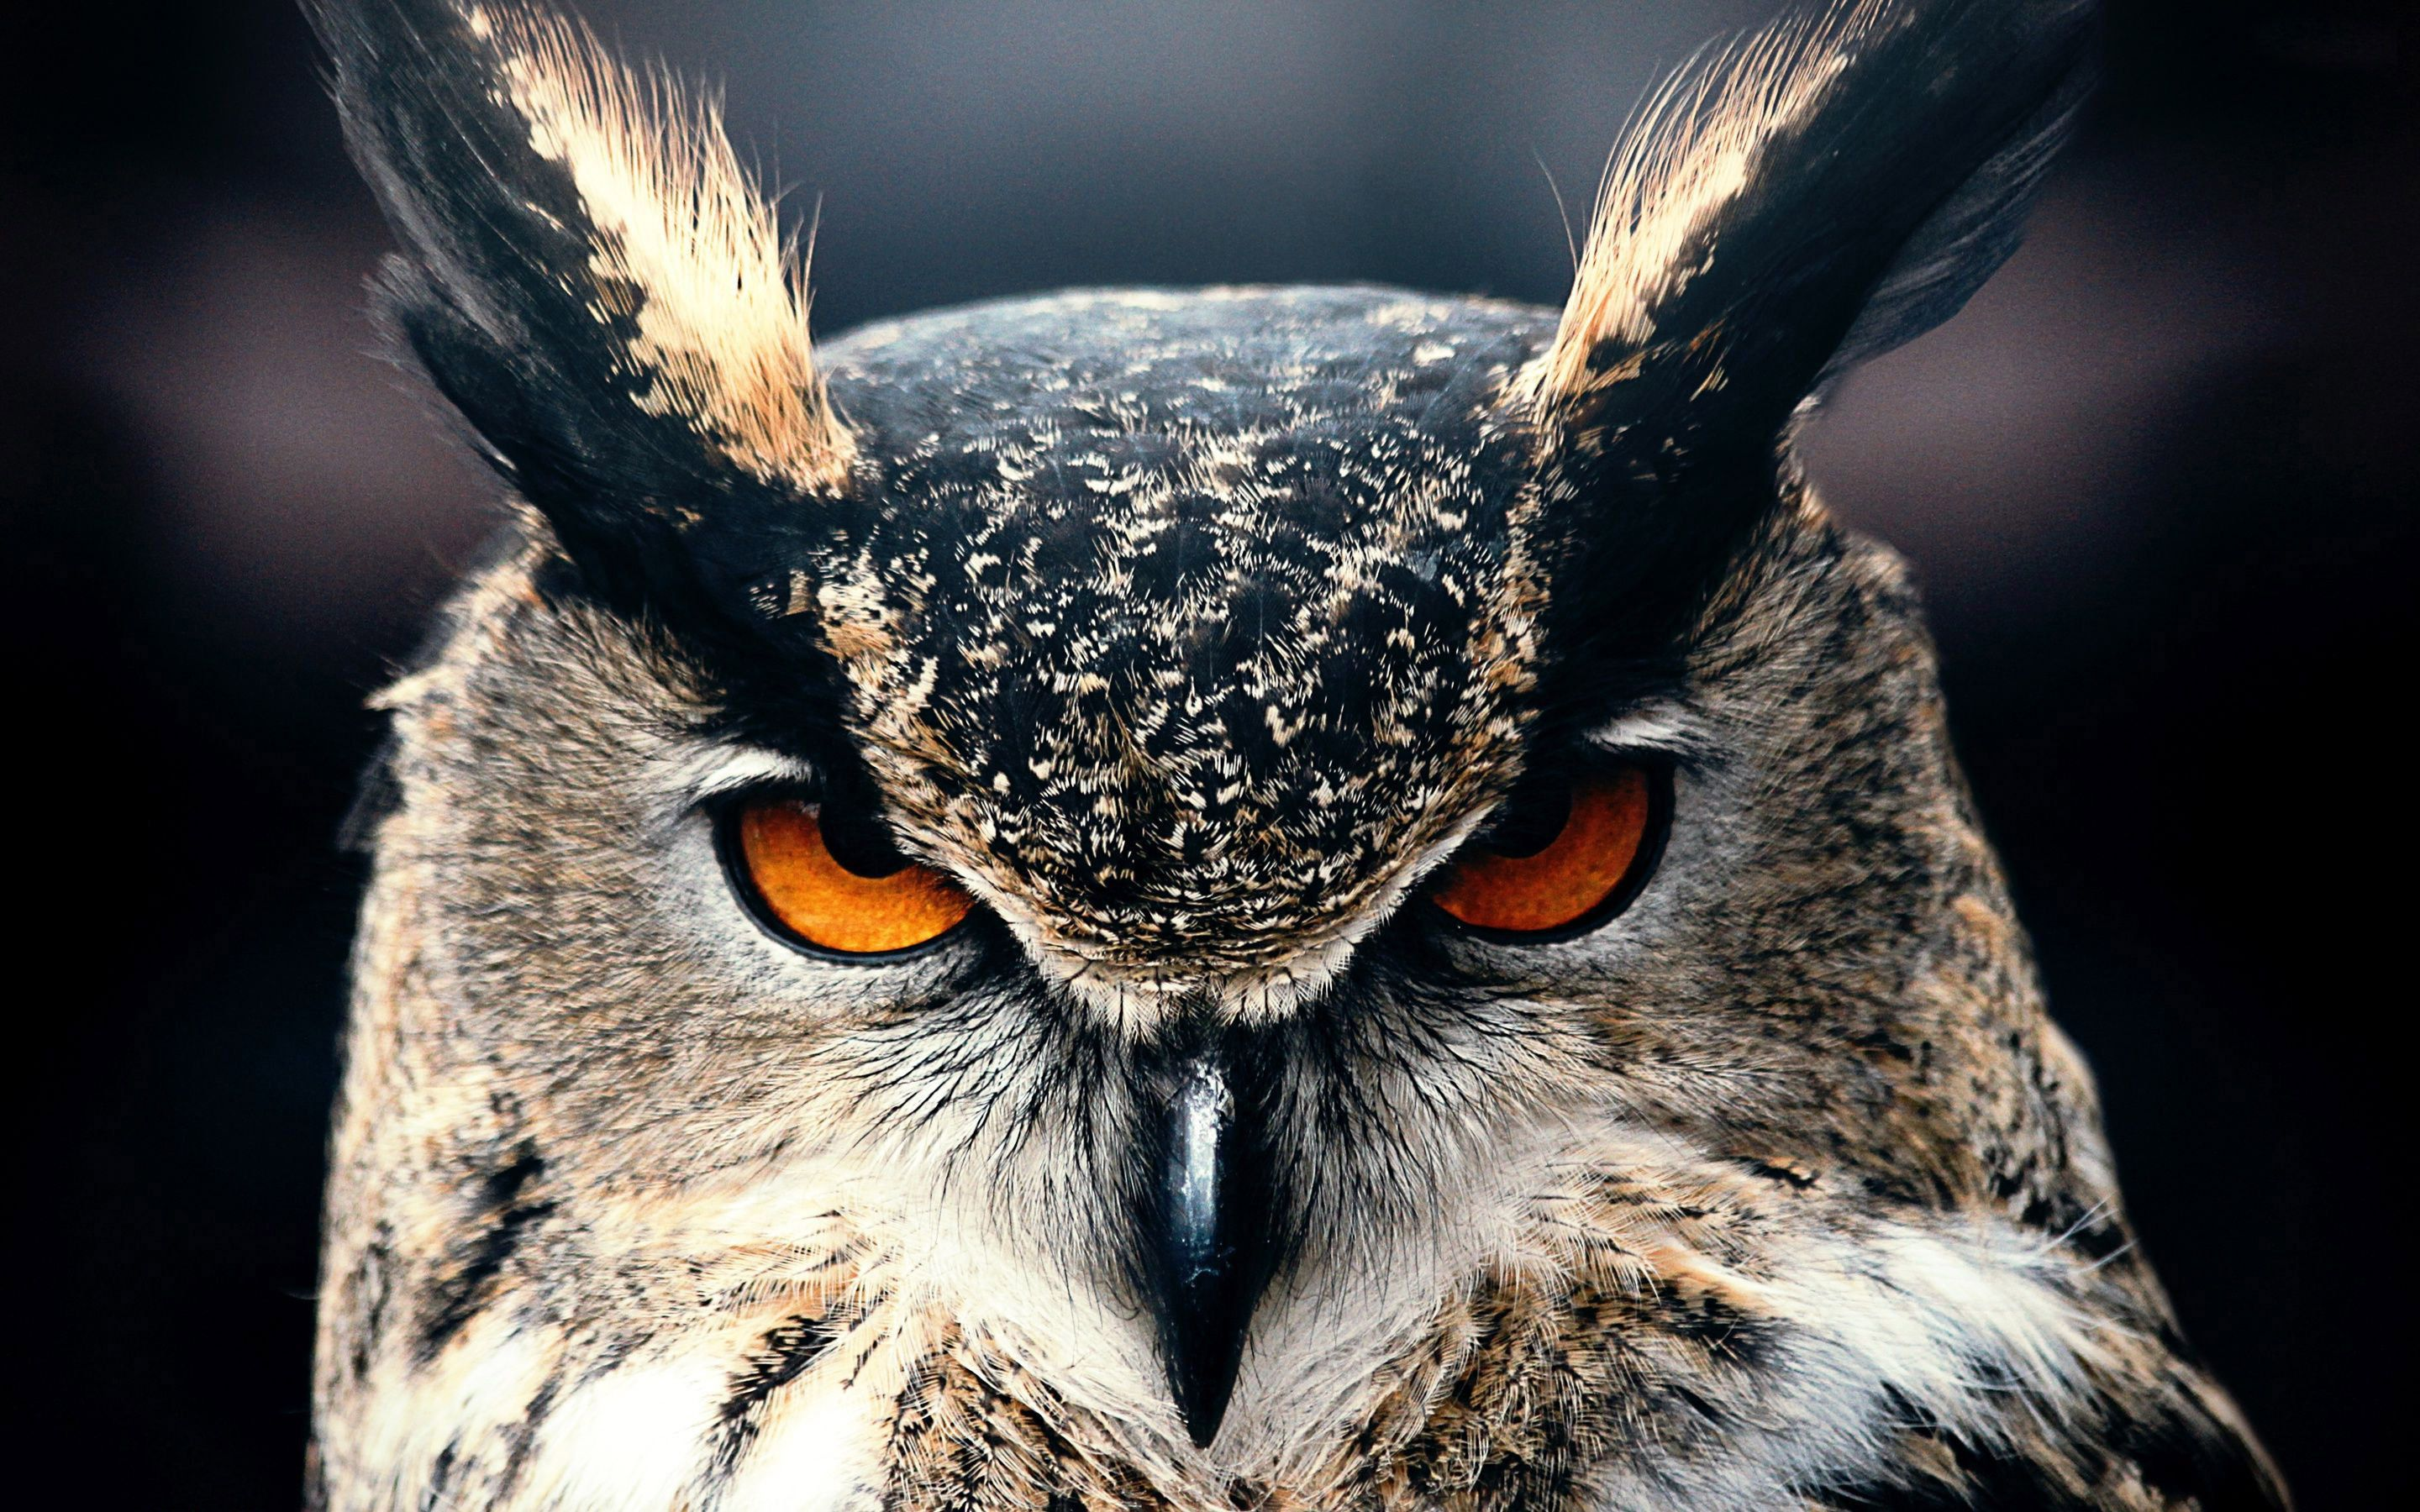 OwlFaceCloseupWallpaperHD.jpg (2880×1800) Owl eyes